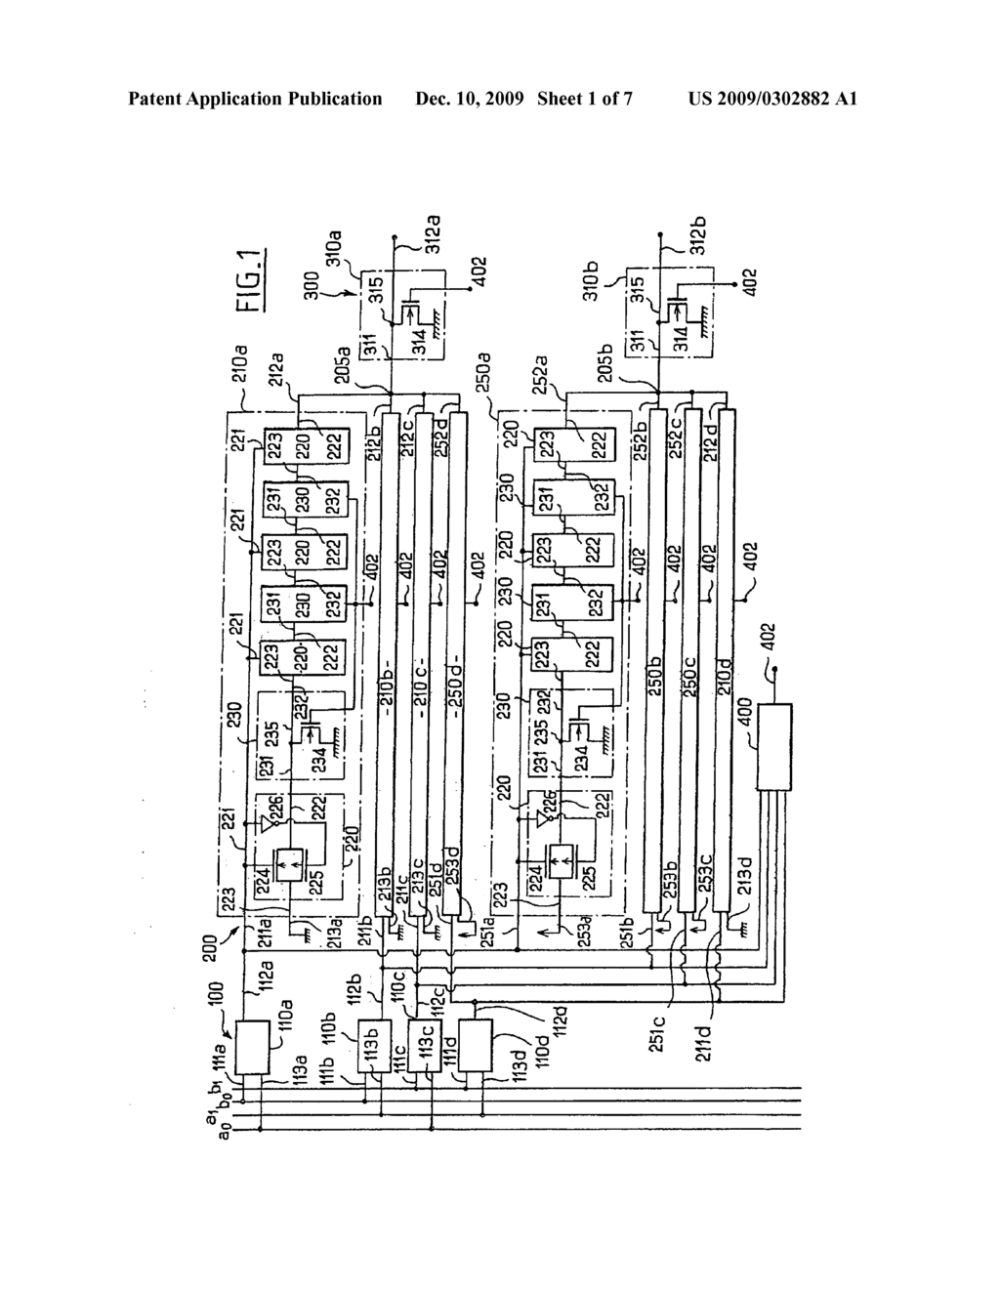 medium resolution of device forming a logic gate for minimizing the differences in electrical of electro magnetic behavior in an intergrated circuit manipulating a secret